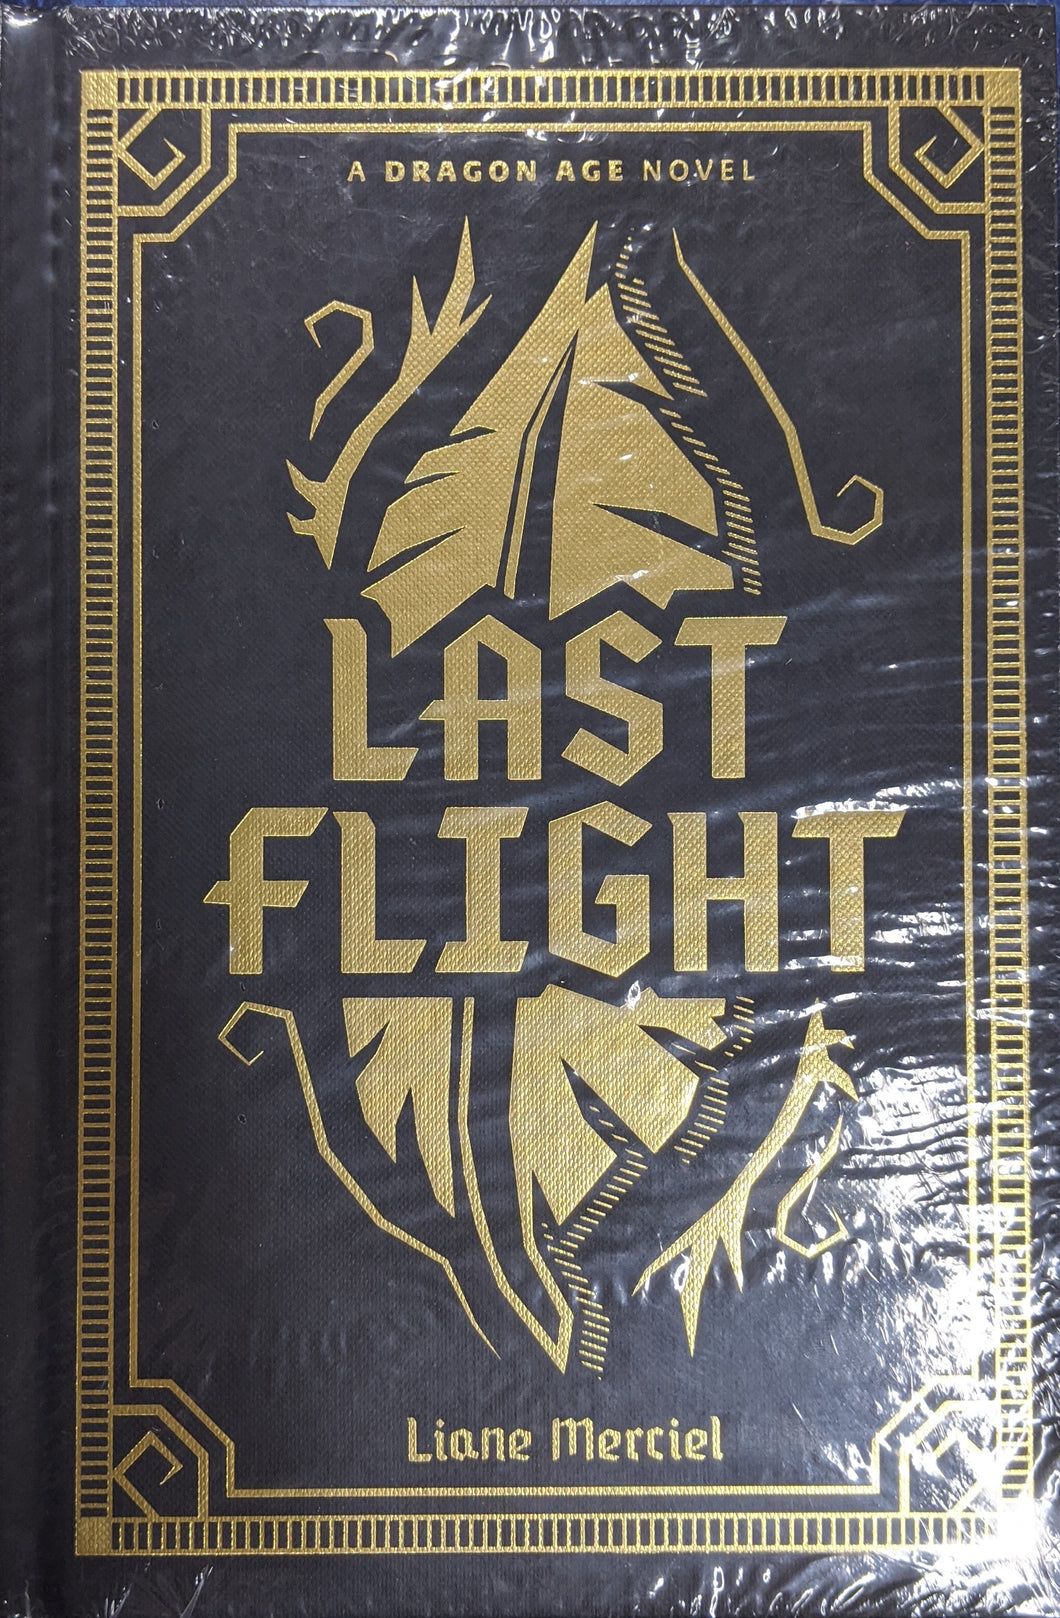 Dragon Age Last Flight Deluxe Edition Novel HC